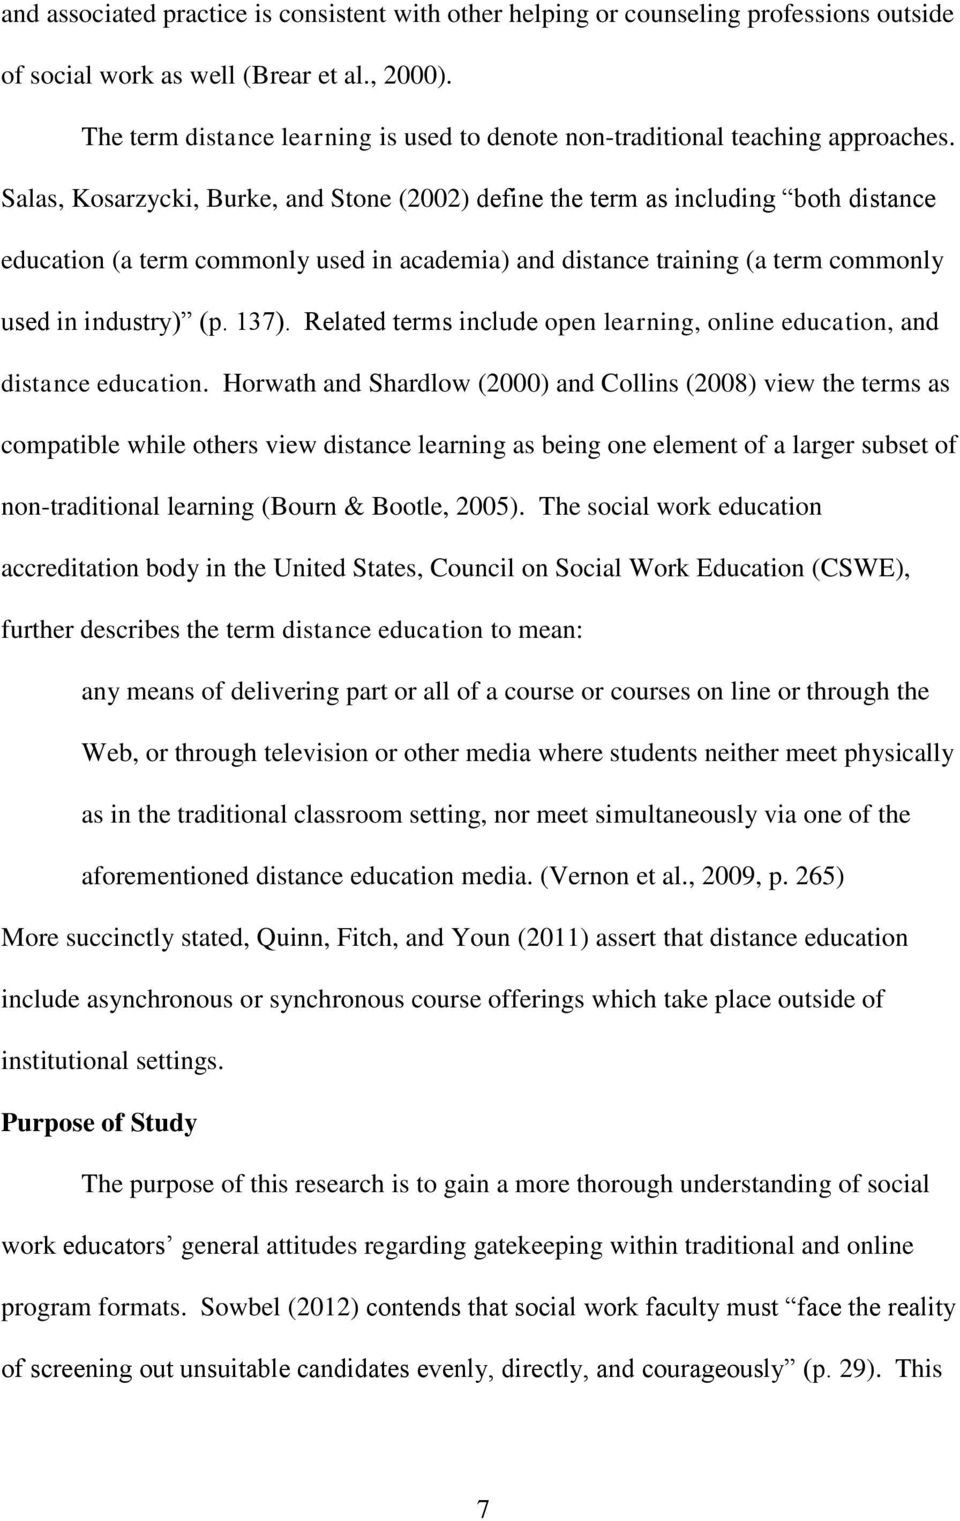 Salas, Kosarzycki, Burke, and Stone (2002) define the term as including both distance education (a term commonly used in academia) and distance training (a term commonly used in industry) (p. 137).